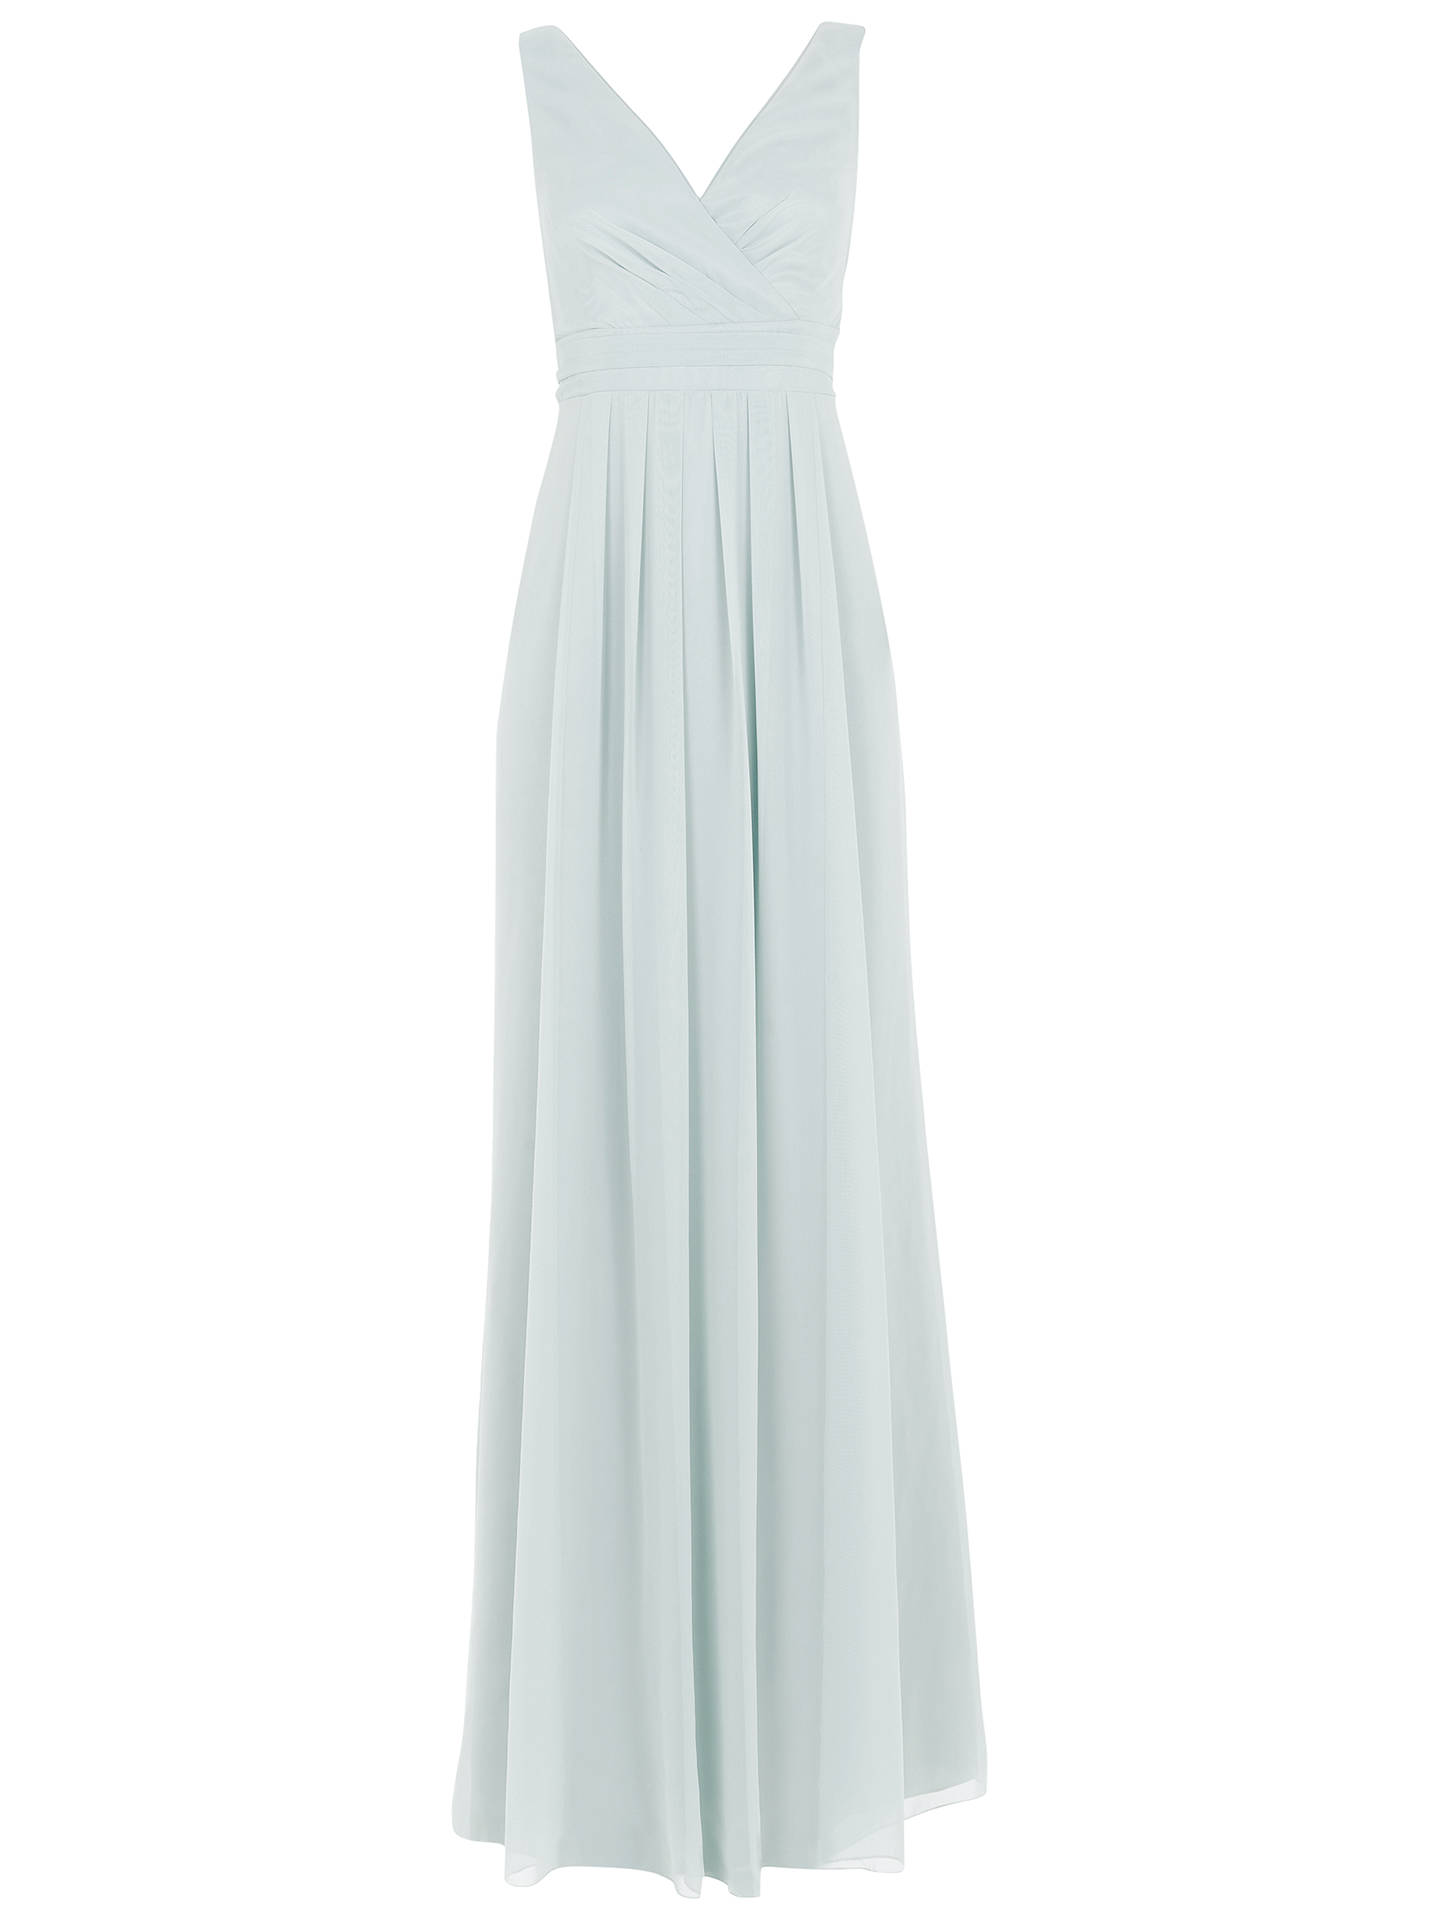 Maids To Measure Lisette Floaty Dress At John Lewis Partners Tuft Micro Misty 360 Buymaids Green 8 Online